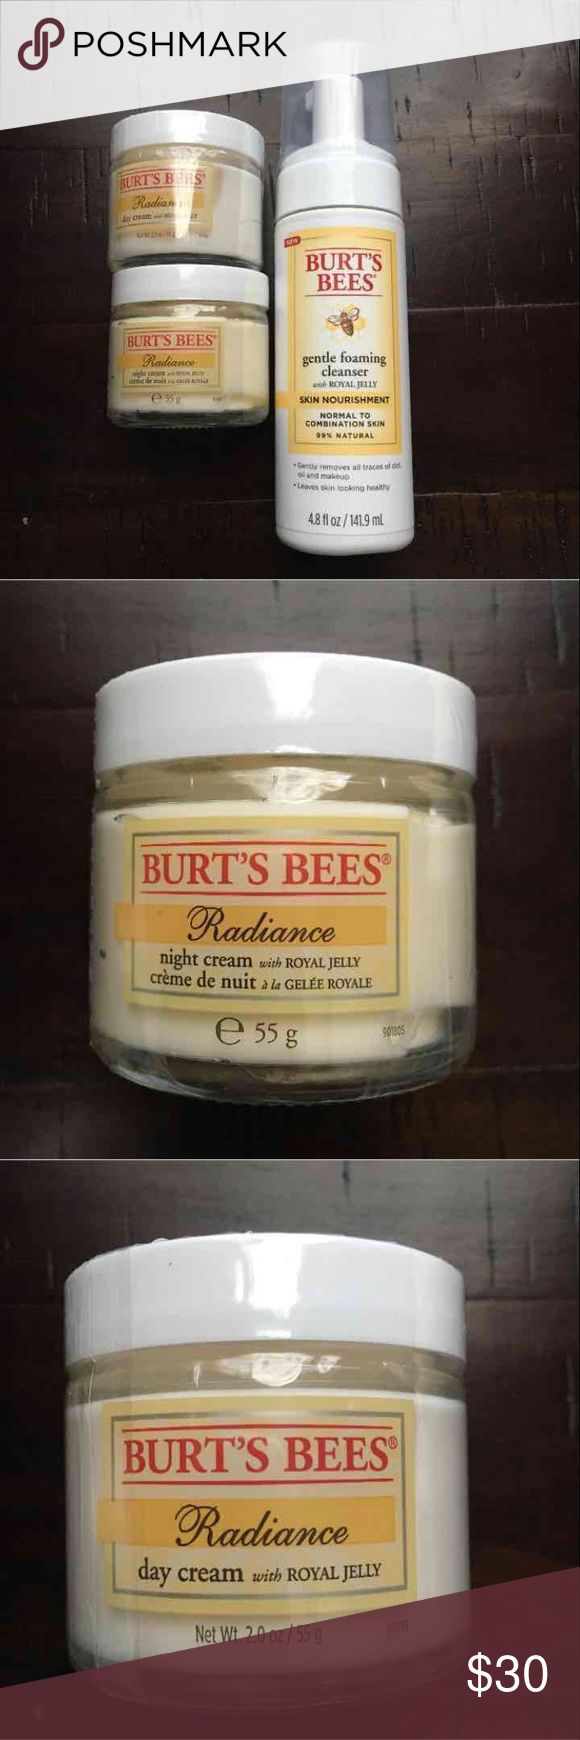 Burt's Bees with royal jelly Burt's Bees lot includes  - Burt's Bees Radiance day cream with royal jelly. Net Wt 2 oz  - Burt's Bees Radiance night cream with royal jelly. Net Wt 2 oz  - Burt's Bees gentle foaming cleanser with royal jelly. Normal to combination skin. 99% natural. Net Wt 4.8 fl oz   All new, sealed bottles No expiration dates NO free shipping Burt's Bees Makeup